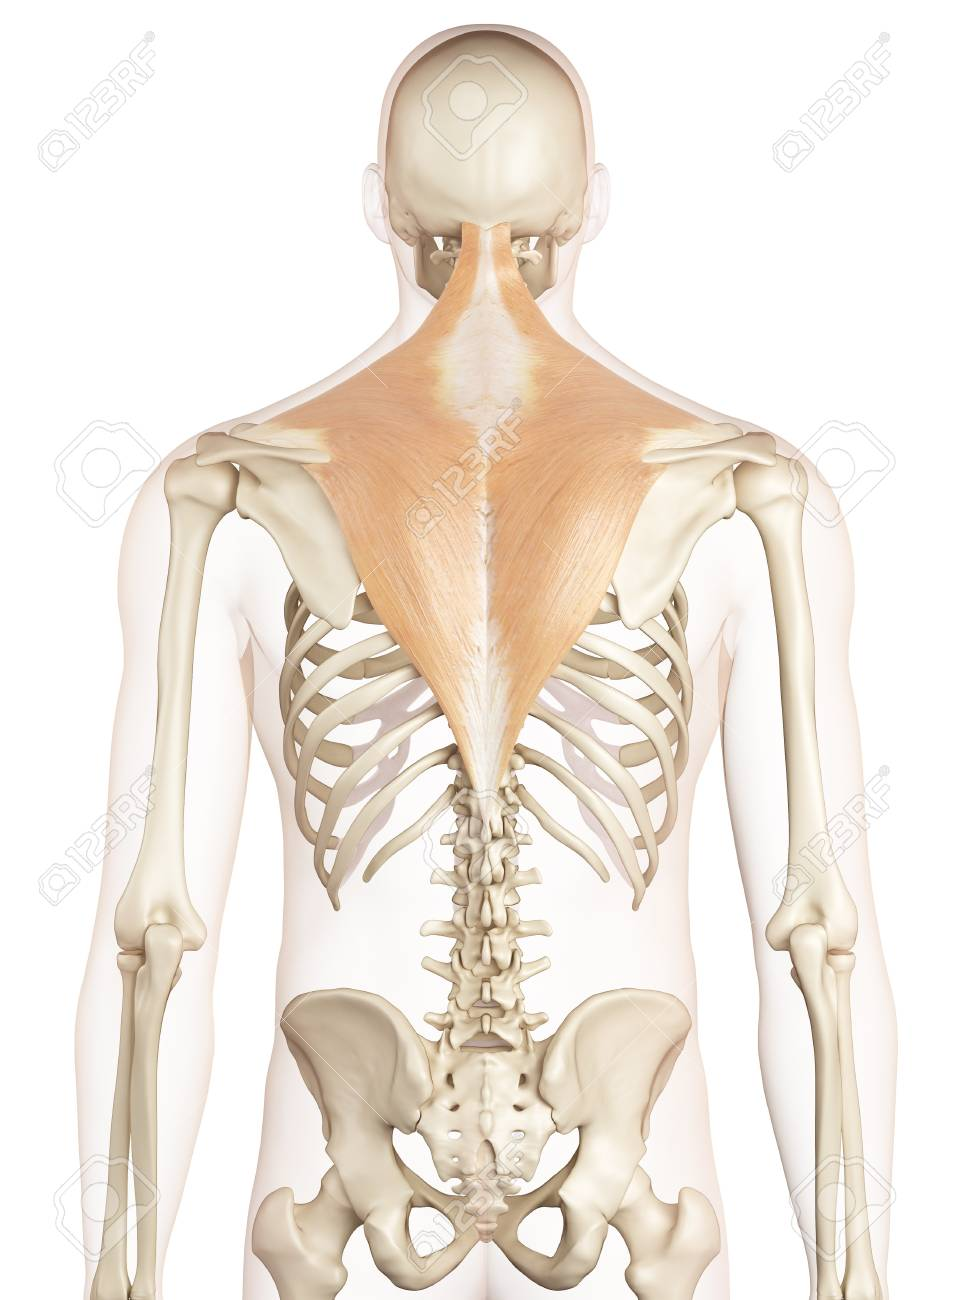 Human Back Muscles Illustration Stock Photo Picture And Royalty